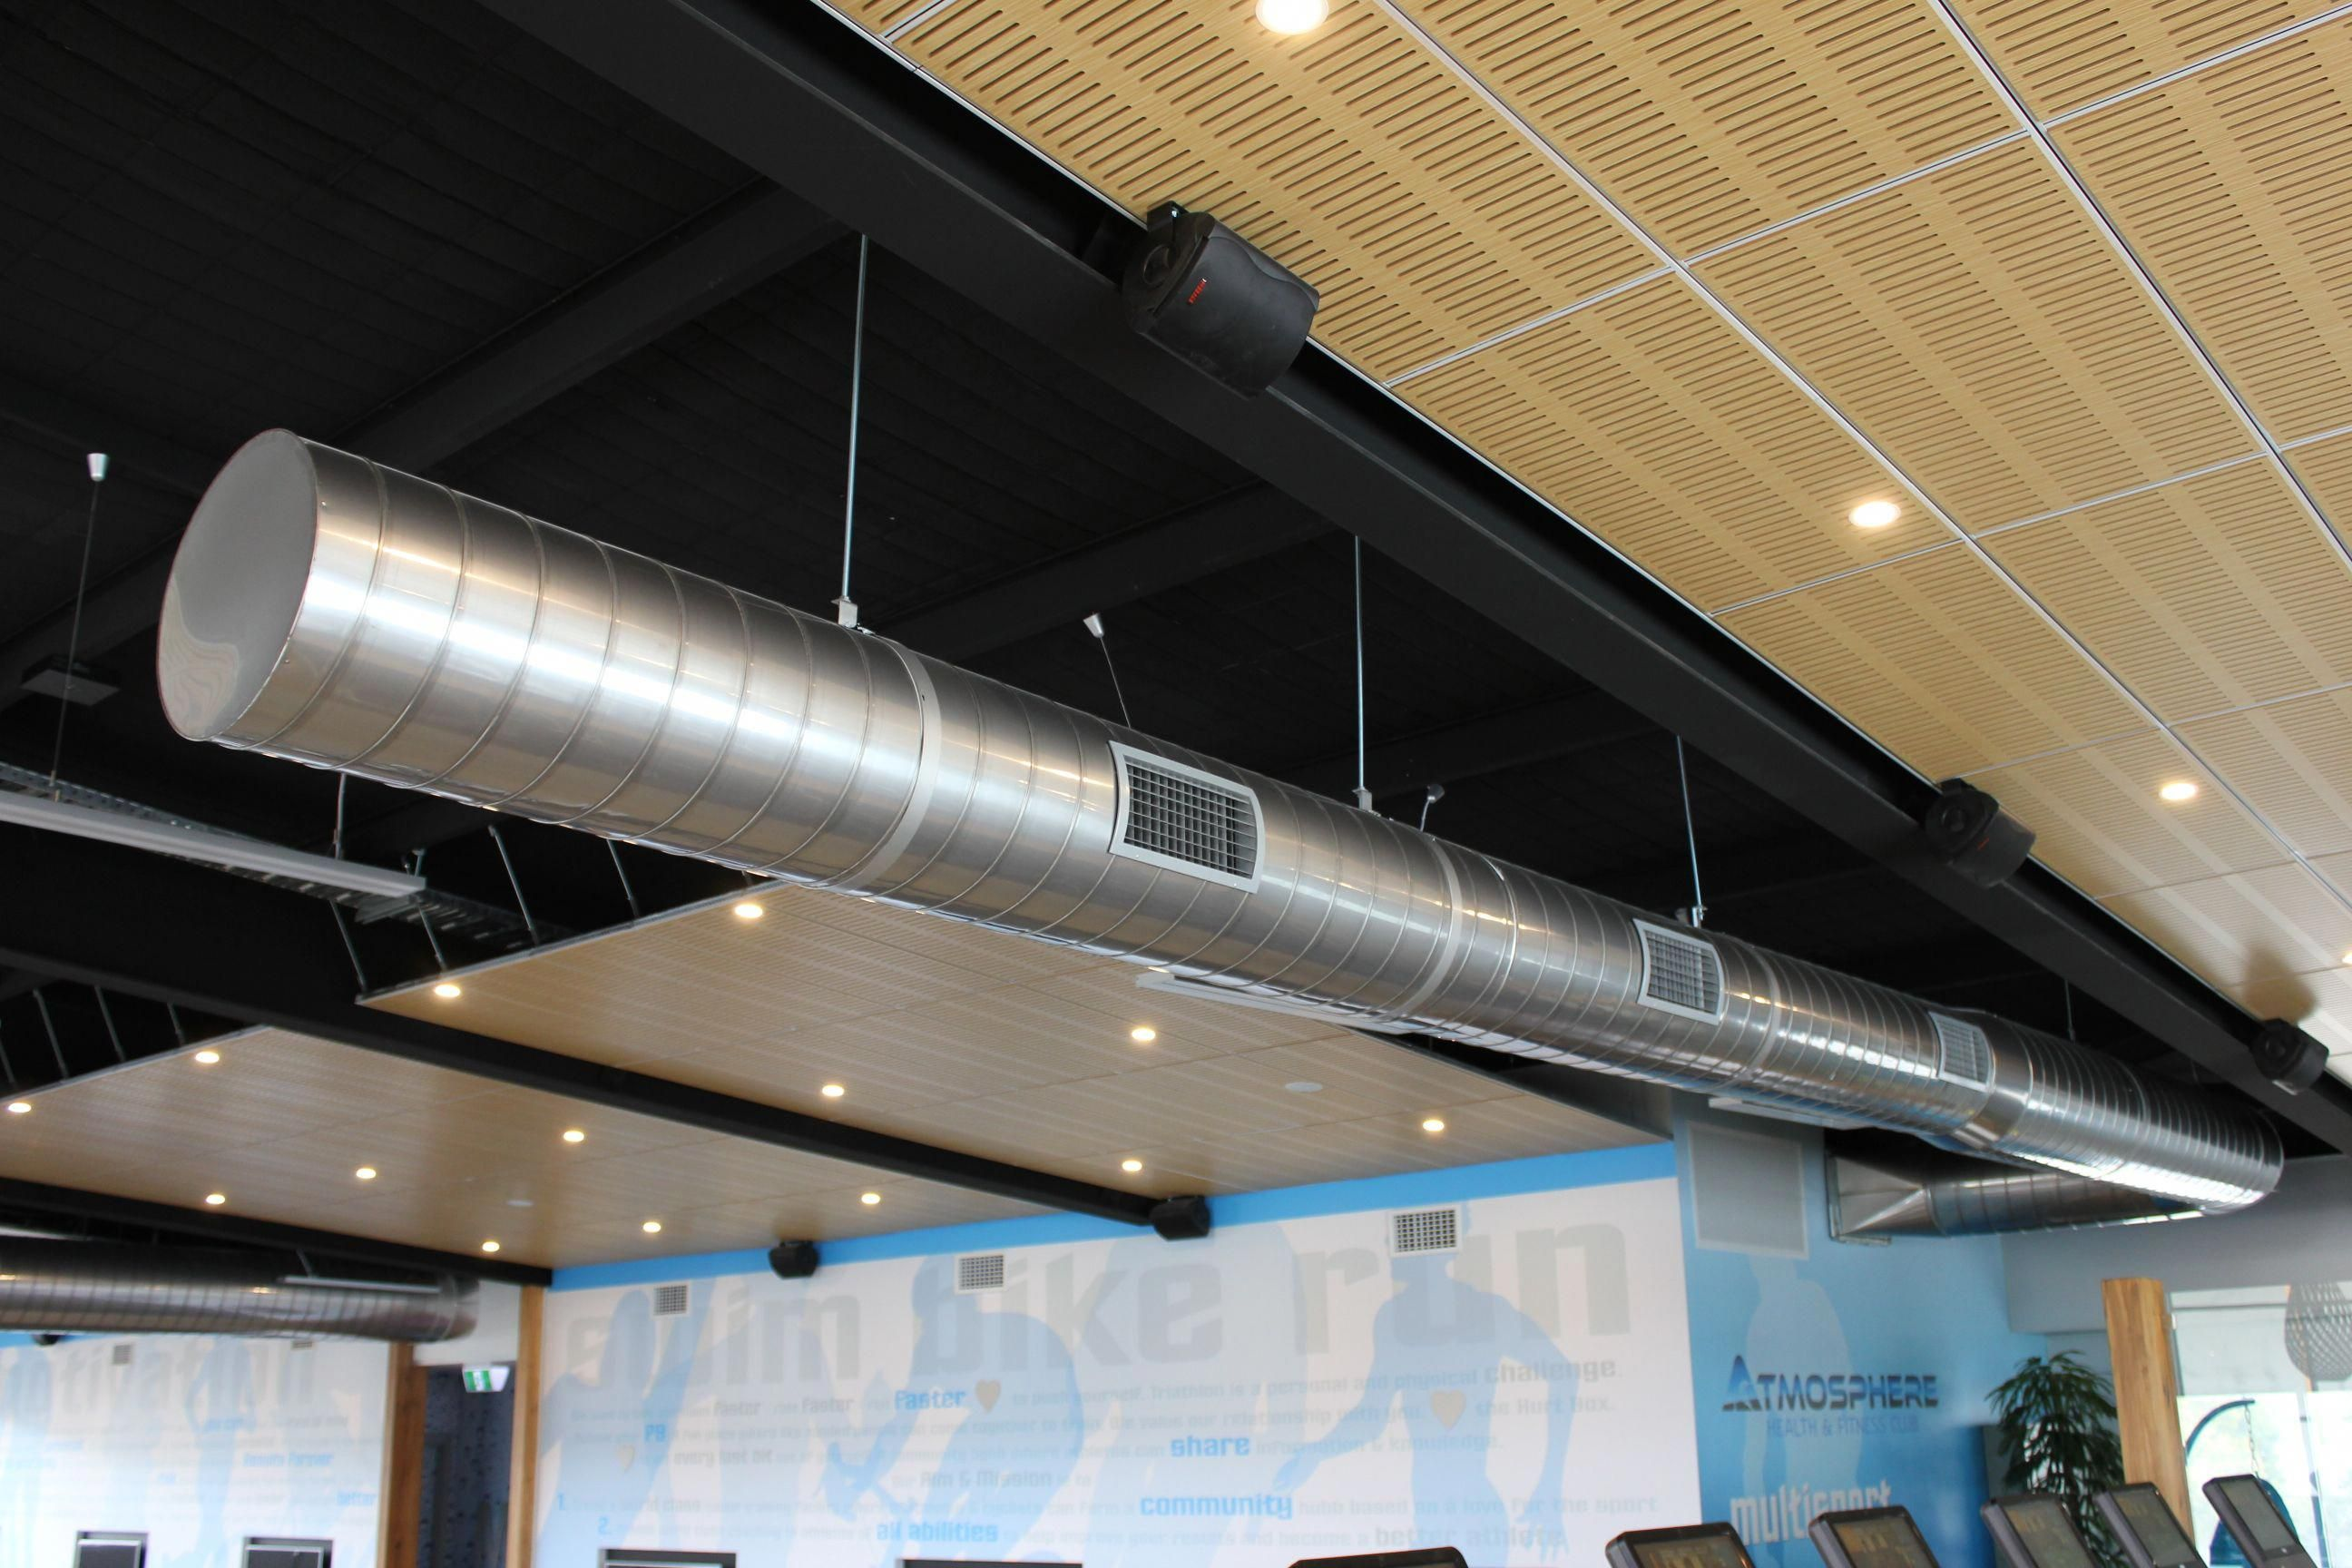 My office has an air conditioning duct like this. It